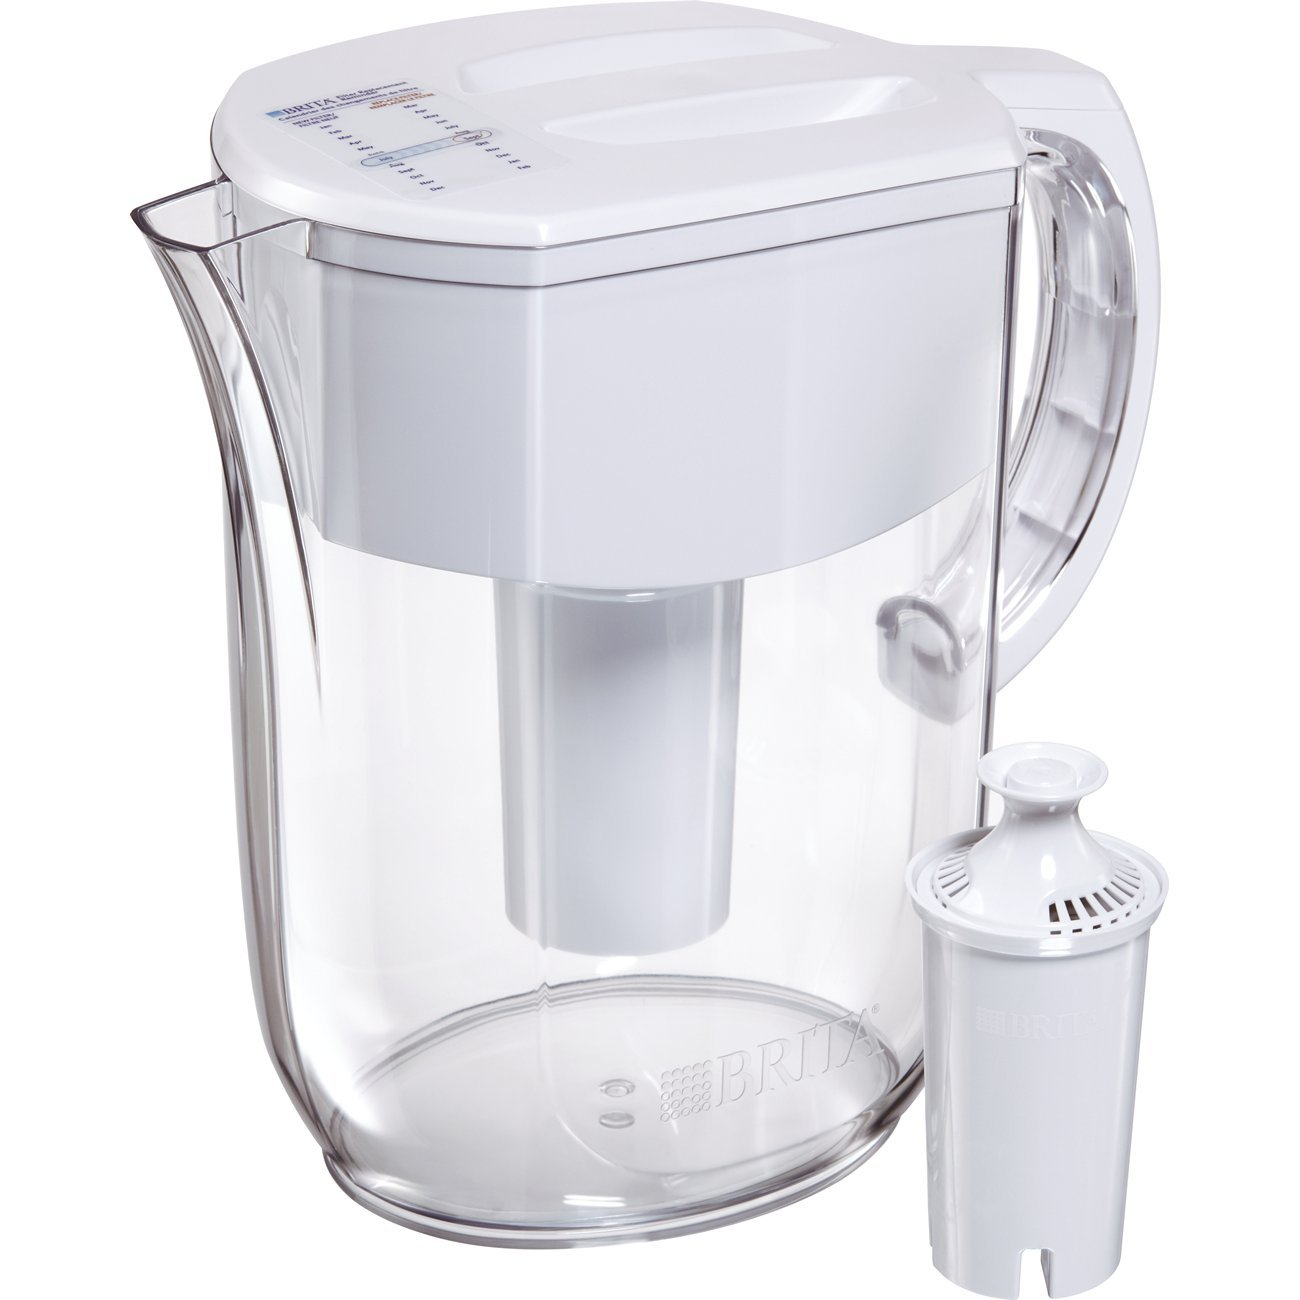 Brita 10 Cup Everyday BPA Free Water Pitcher Review